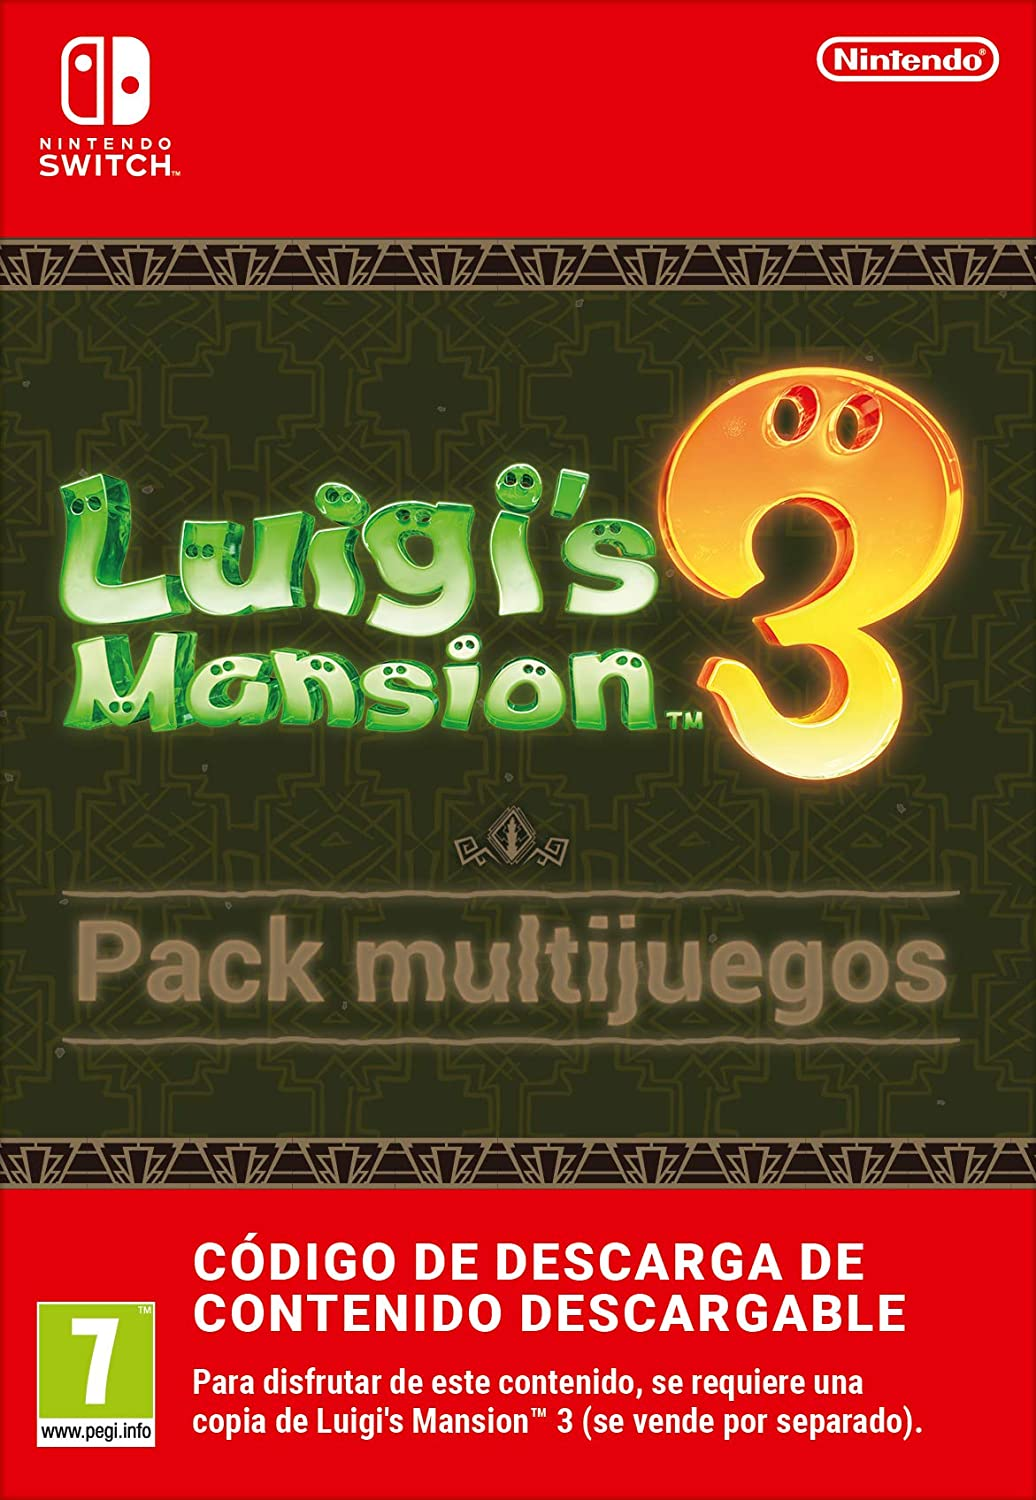 Pack multijuegos de Luigis Mansion 3 | Nintendo Switch - Código de descarga: Amazon.es: Videojuegos